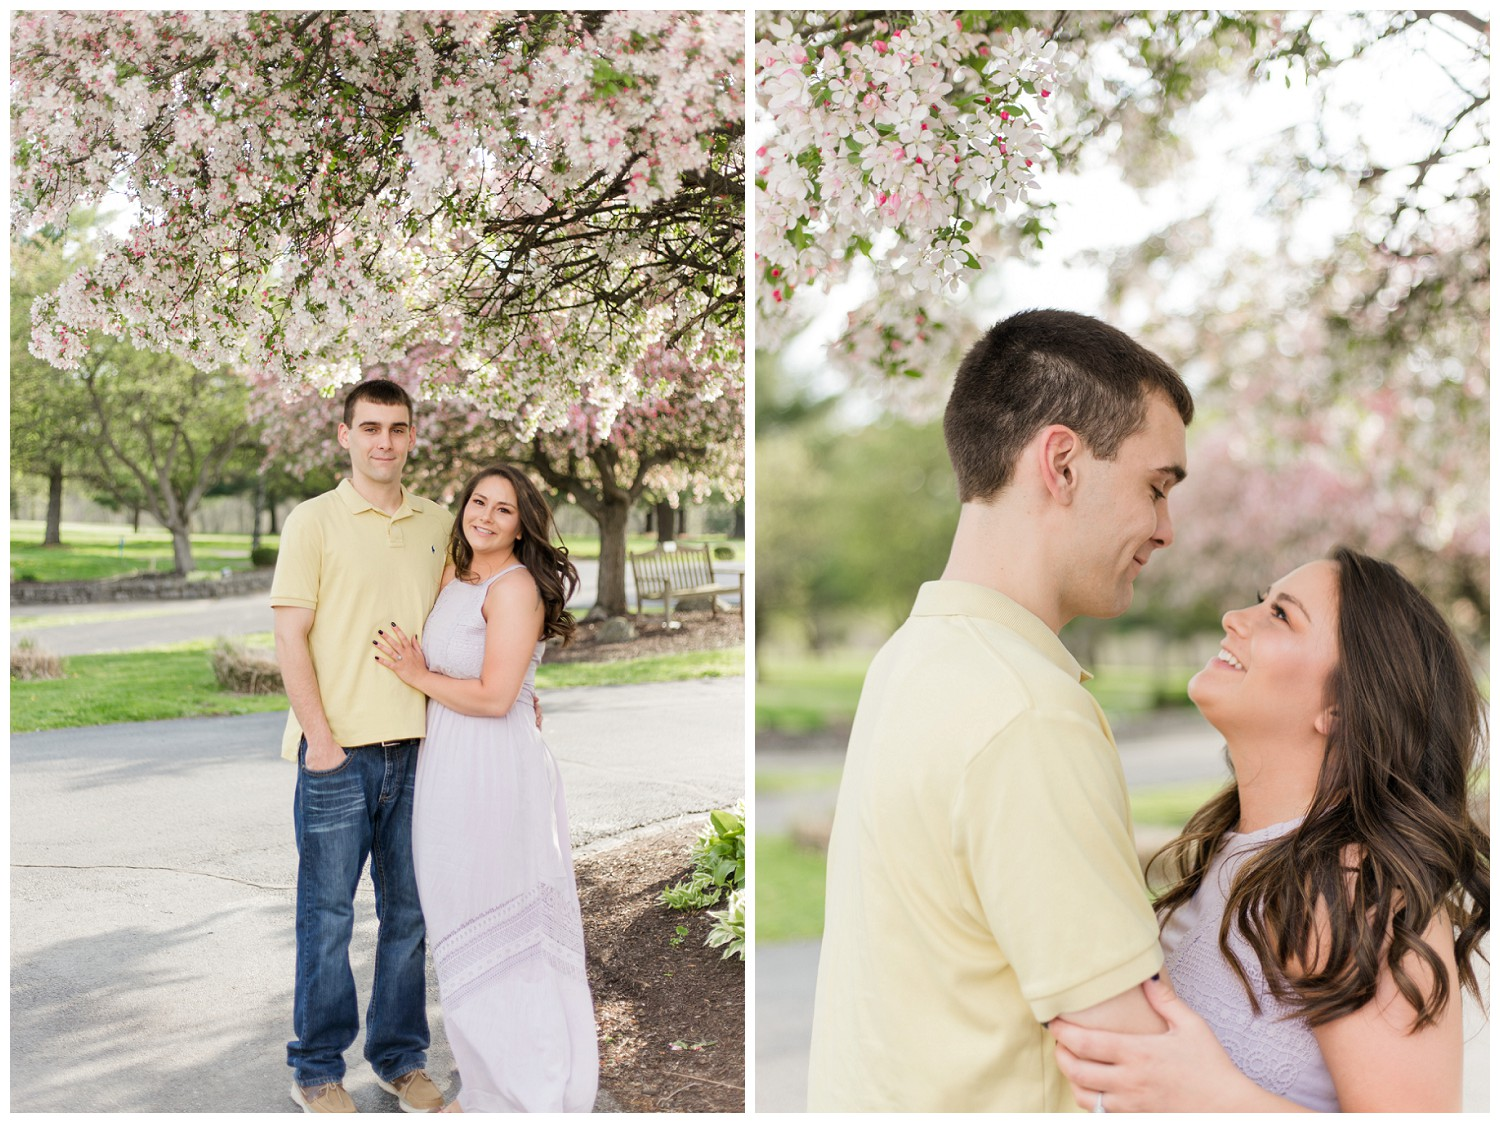 belwood-country-club-engagement-session_0001.jpg